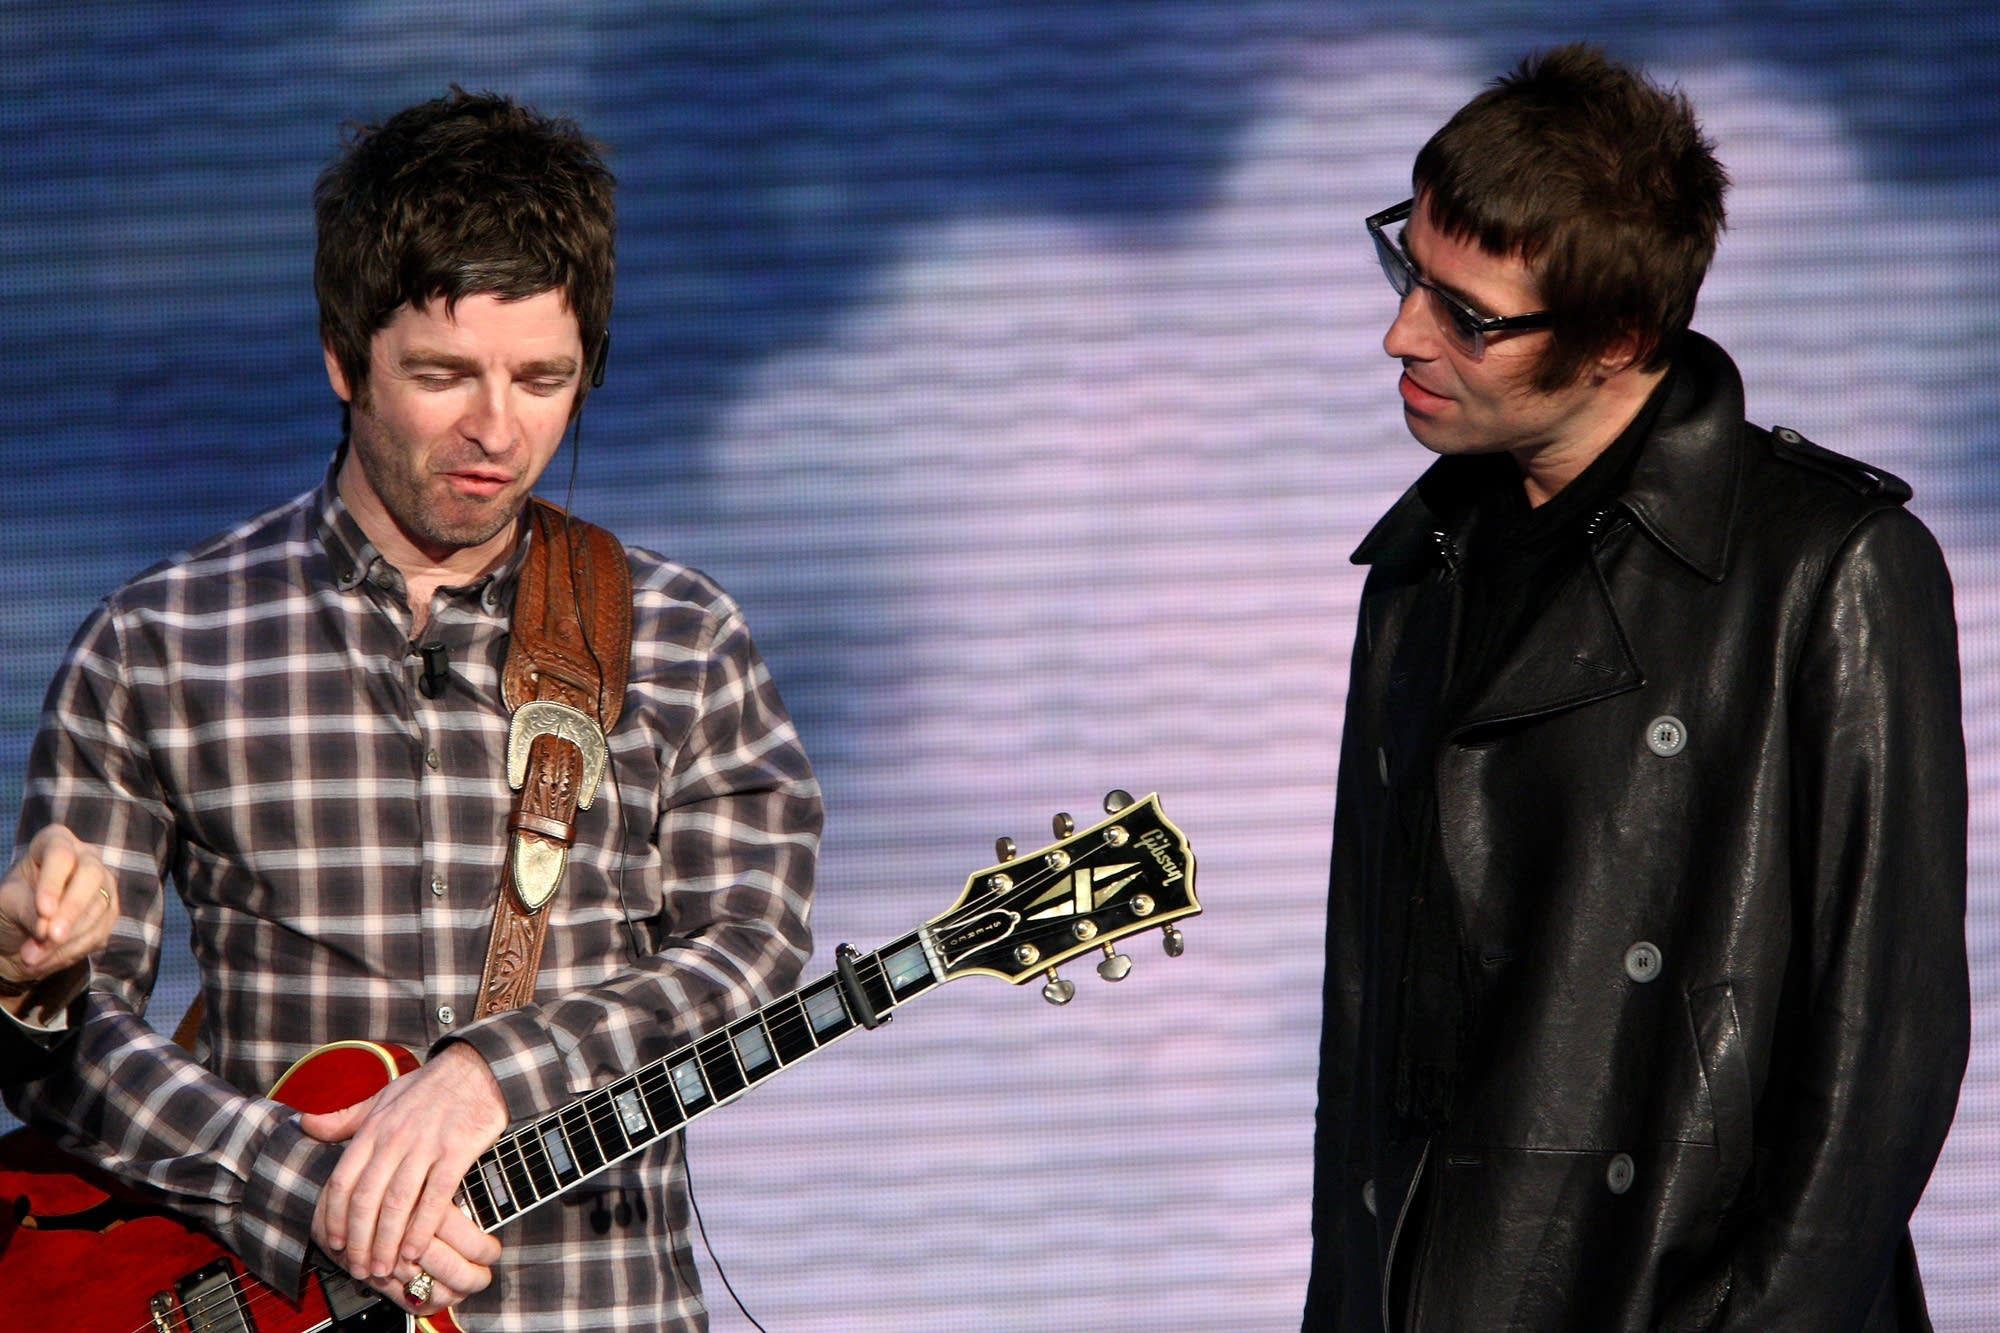 Noel Gallagher and Liam Gallagher in 2008.